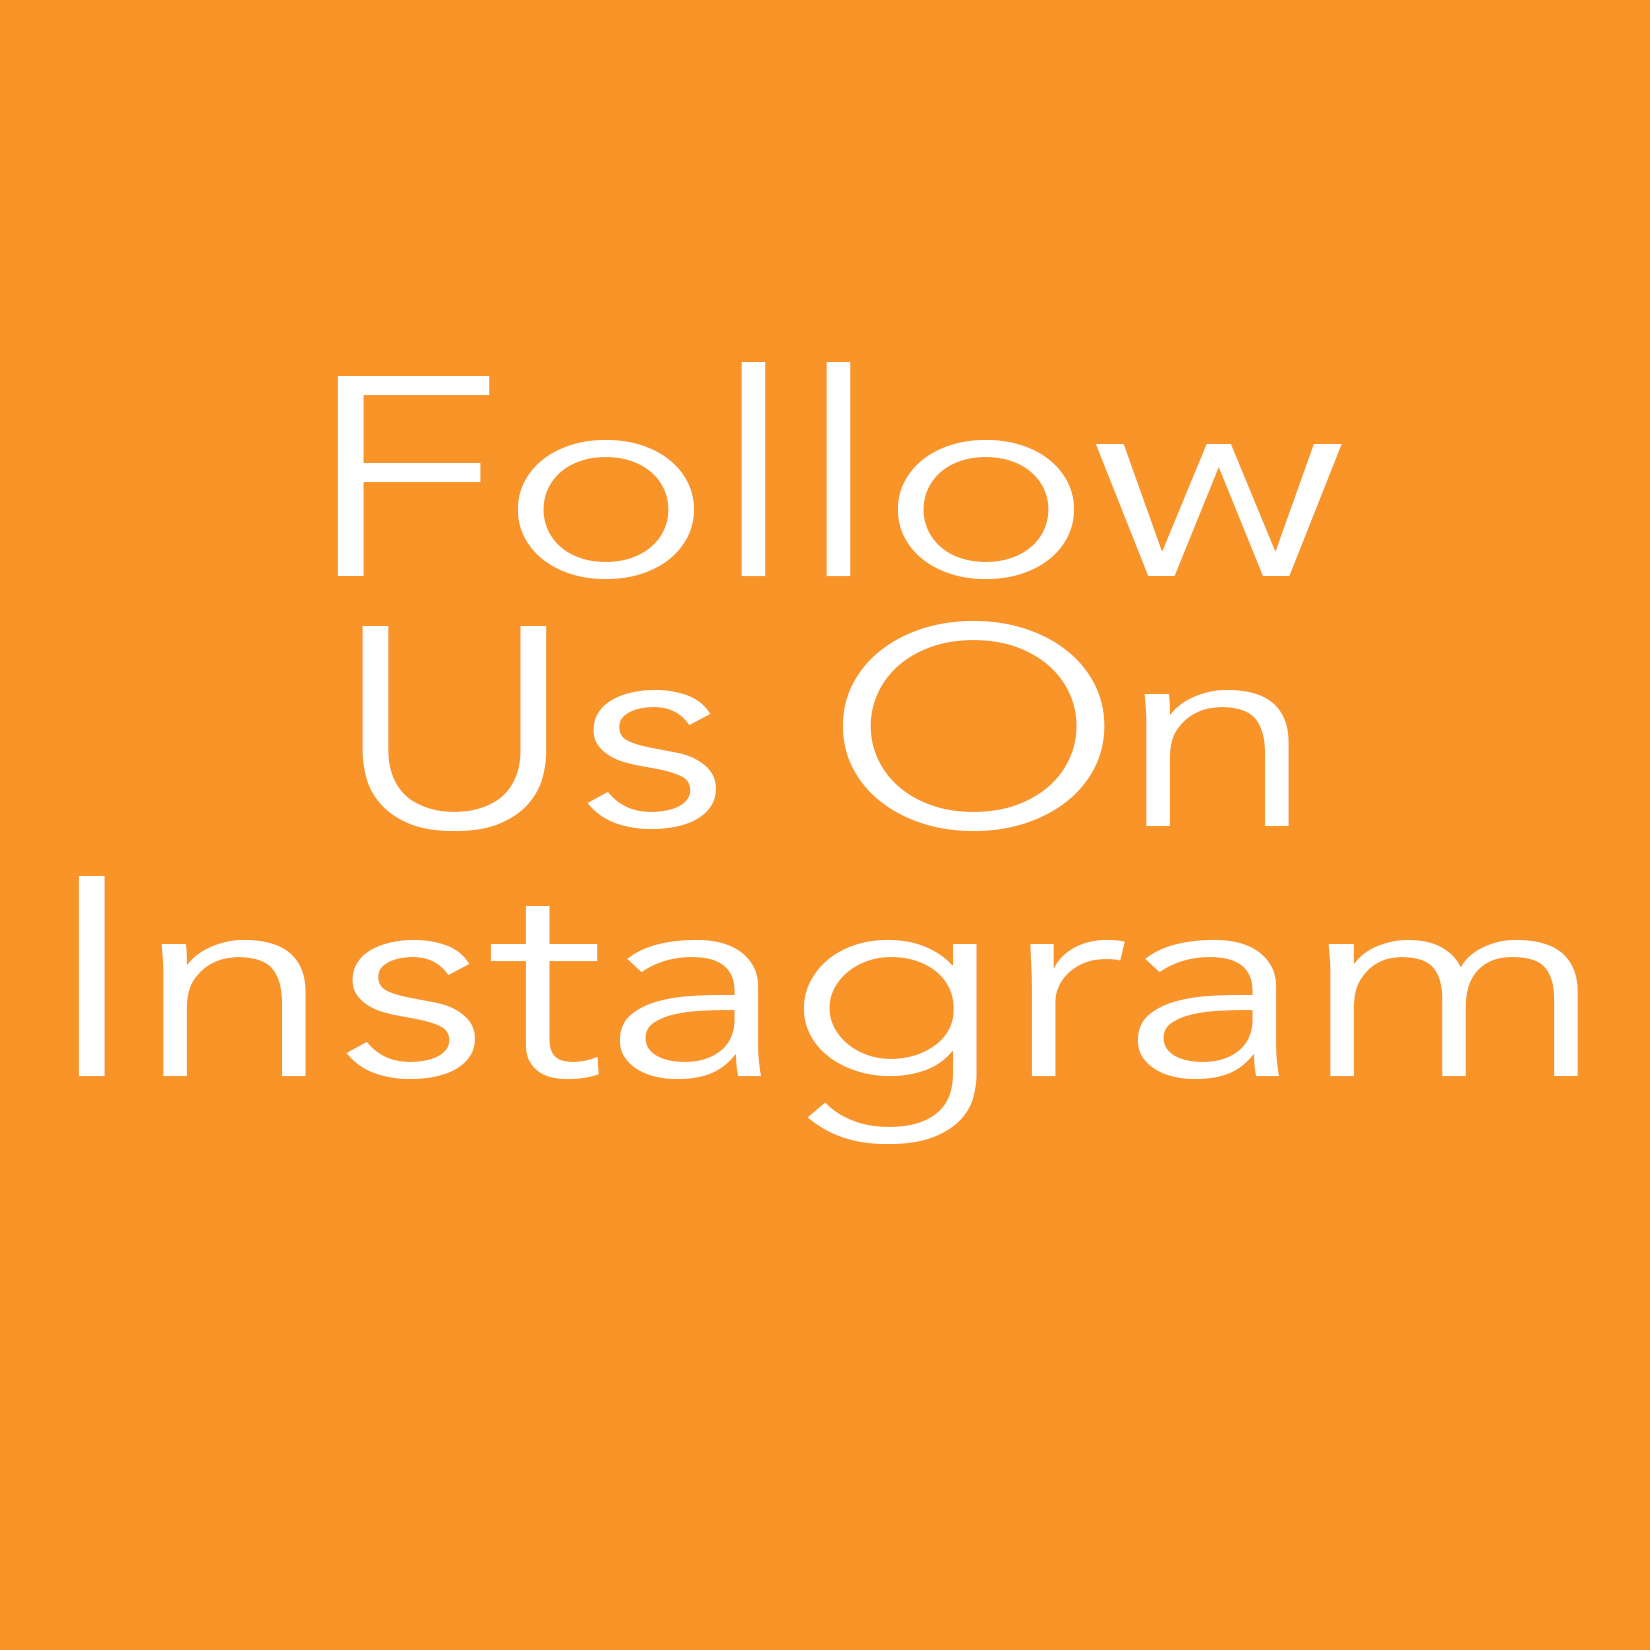 SEE US ON OUR INSTAGRAM FEED